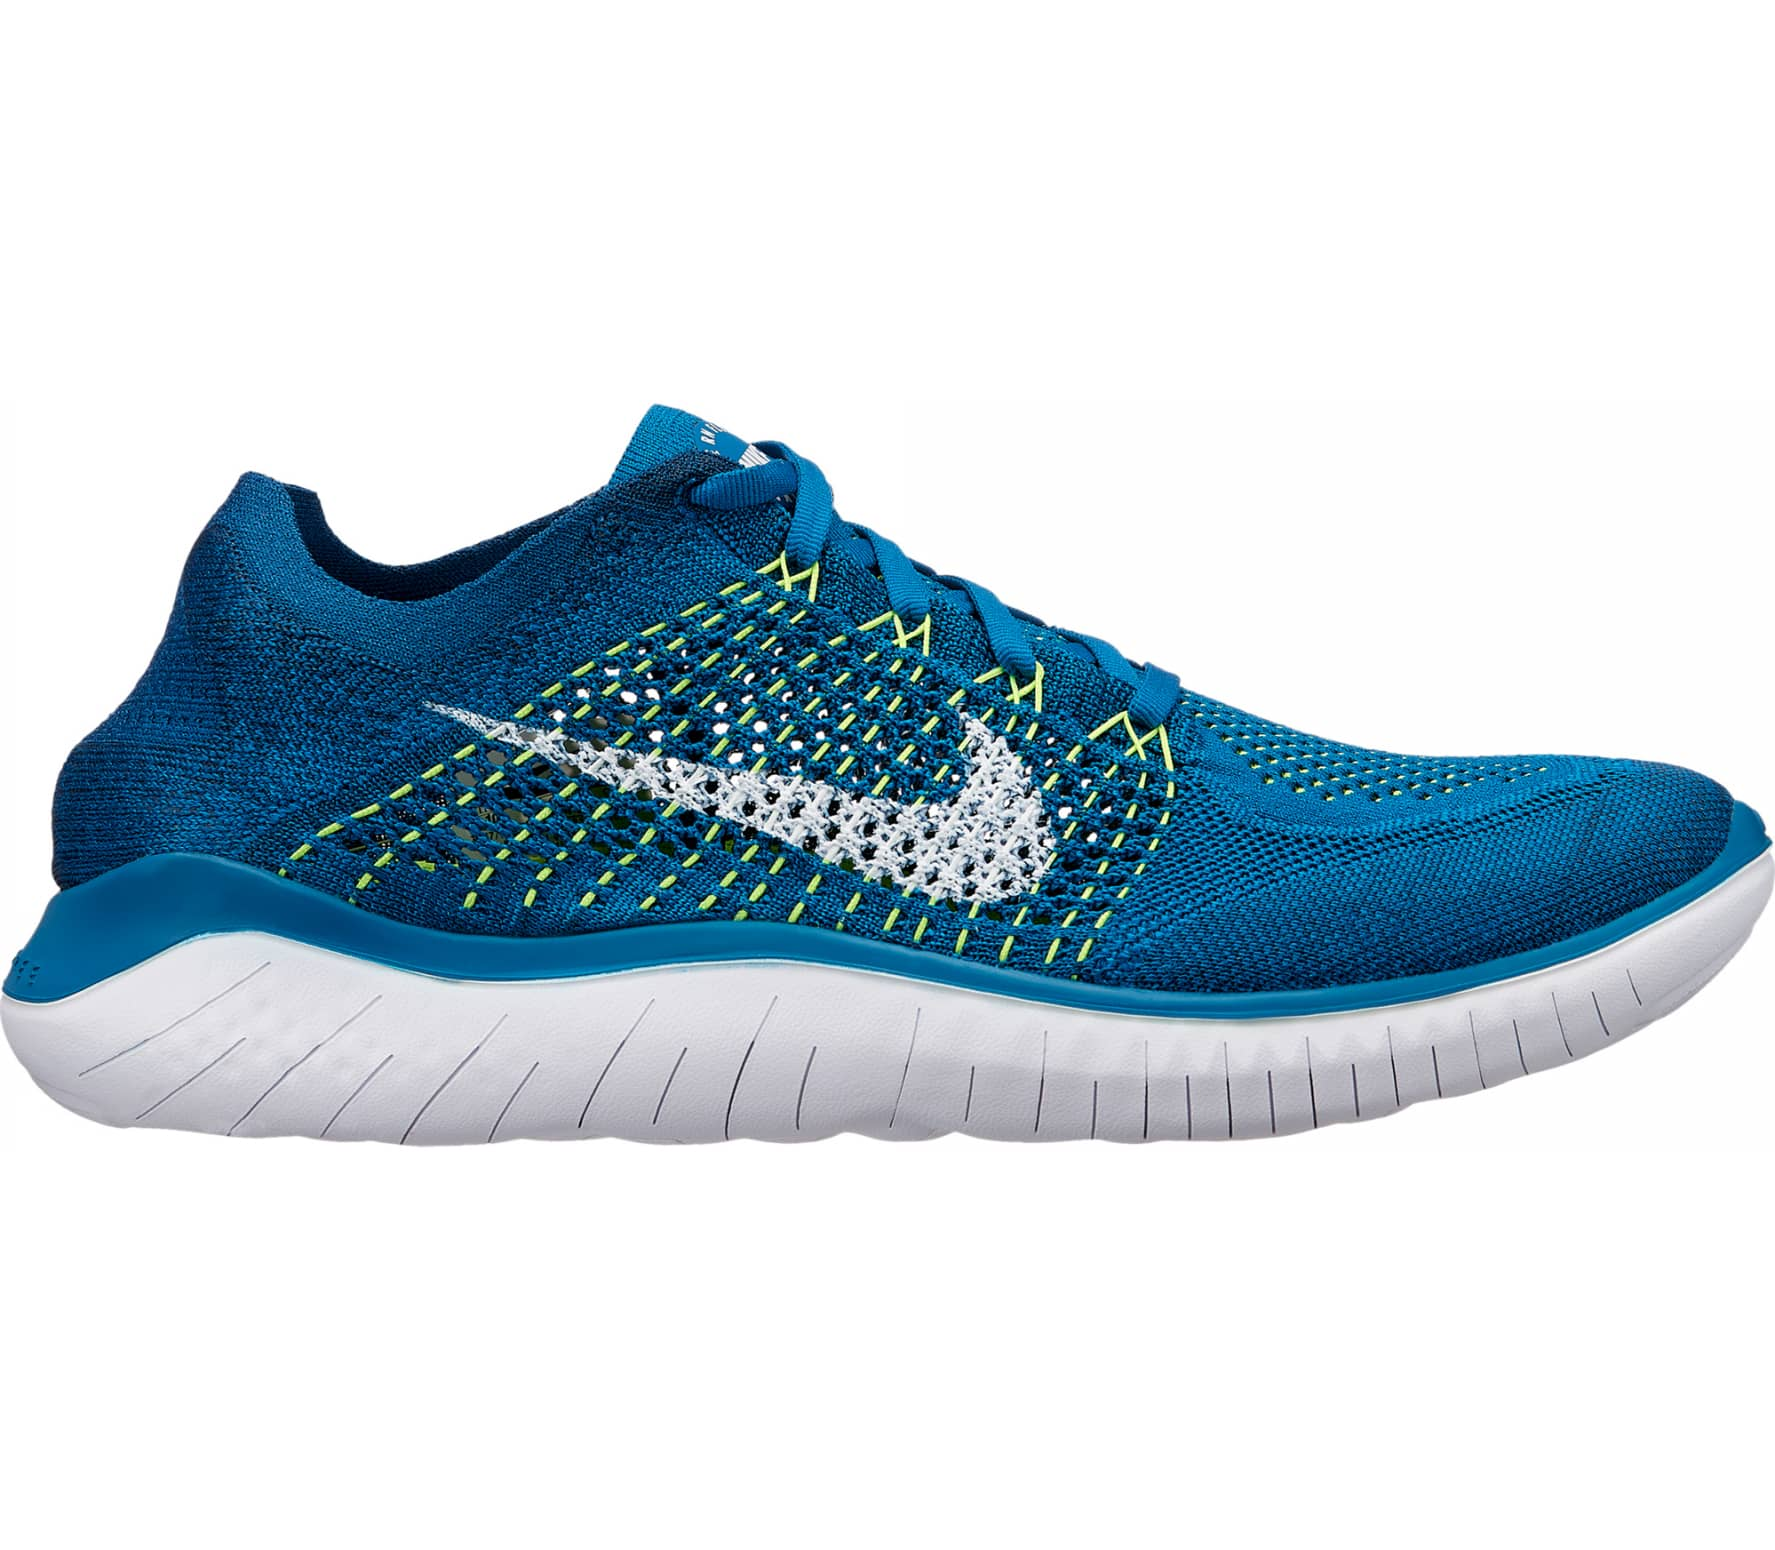 bcc108d5930f Nike - Free RN Flyknit 2018 men s running shoes (blue) - buy it at ...